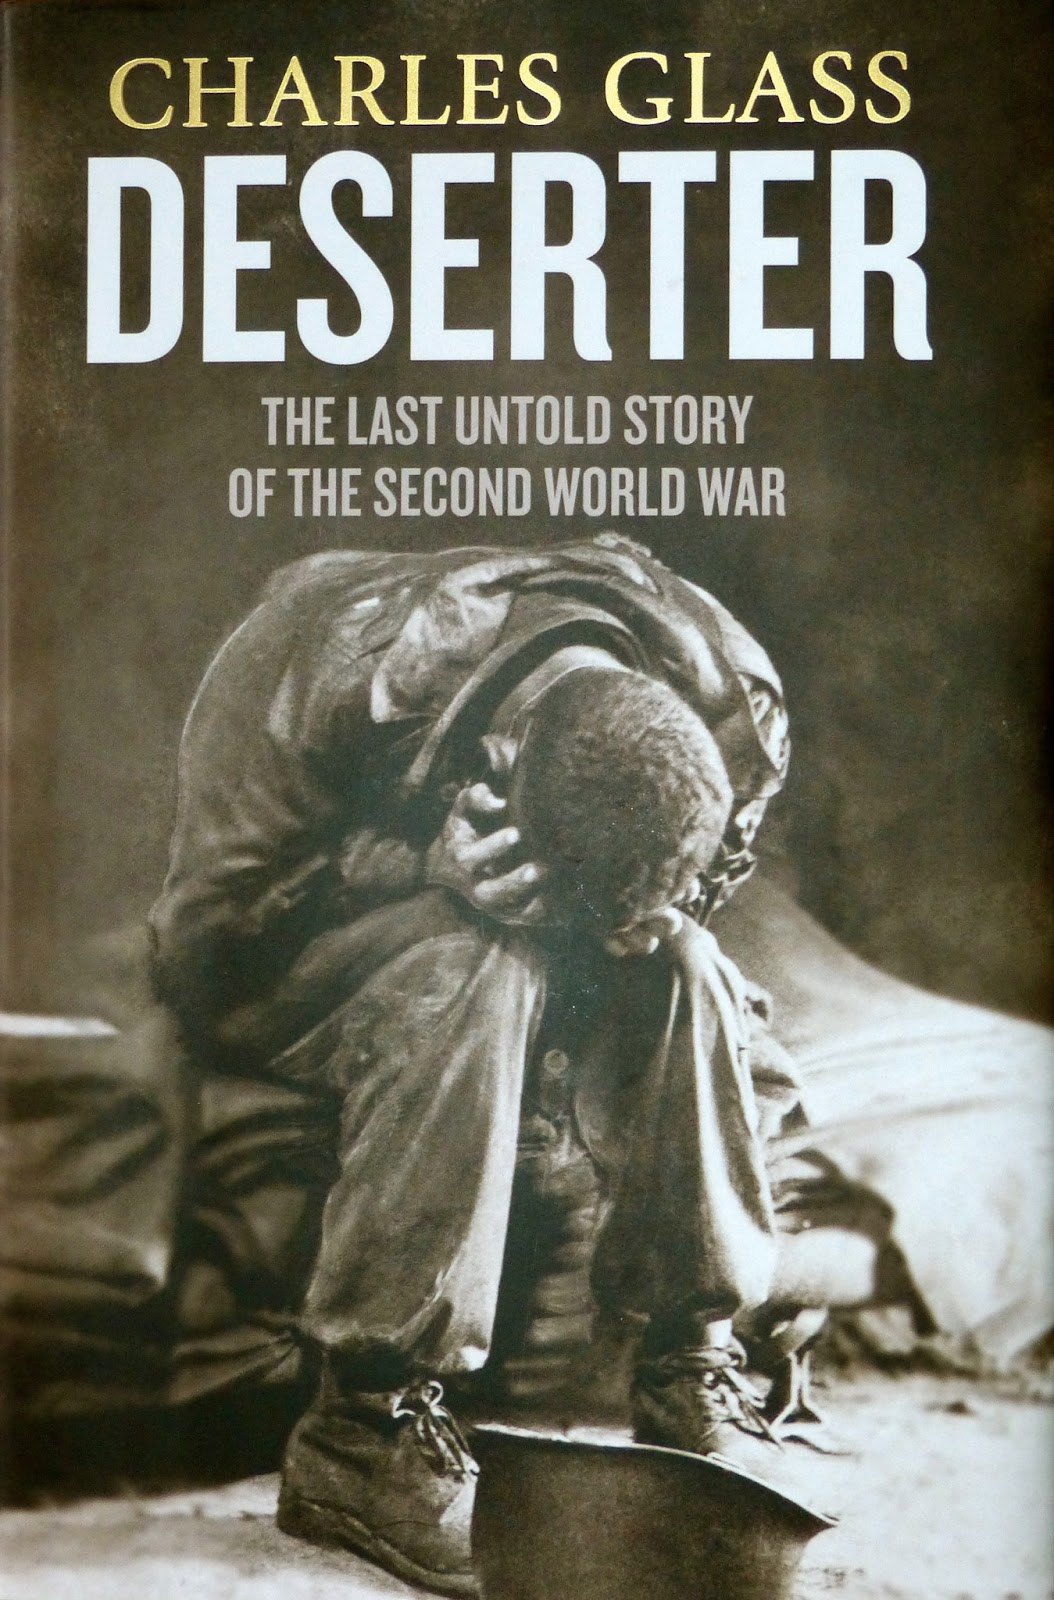 a summarized history of the second world war The devastation of the great war (as world war i was known at the time) had greatly destabilized europe, and in many respects world war ii grew out of issues left unresolved by that earlier conflict.